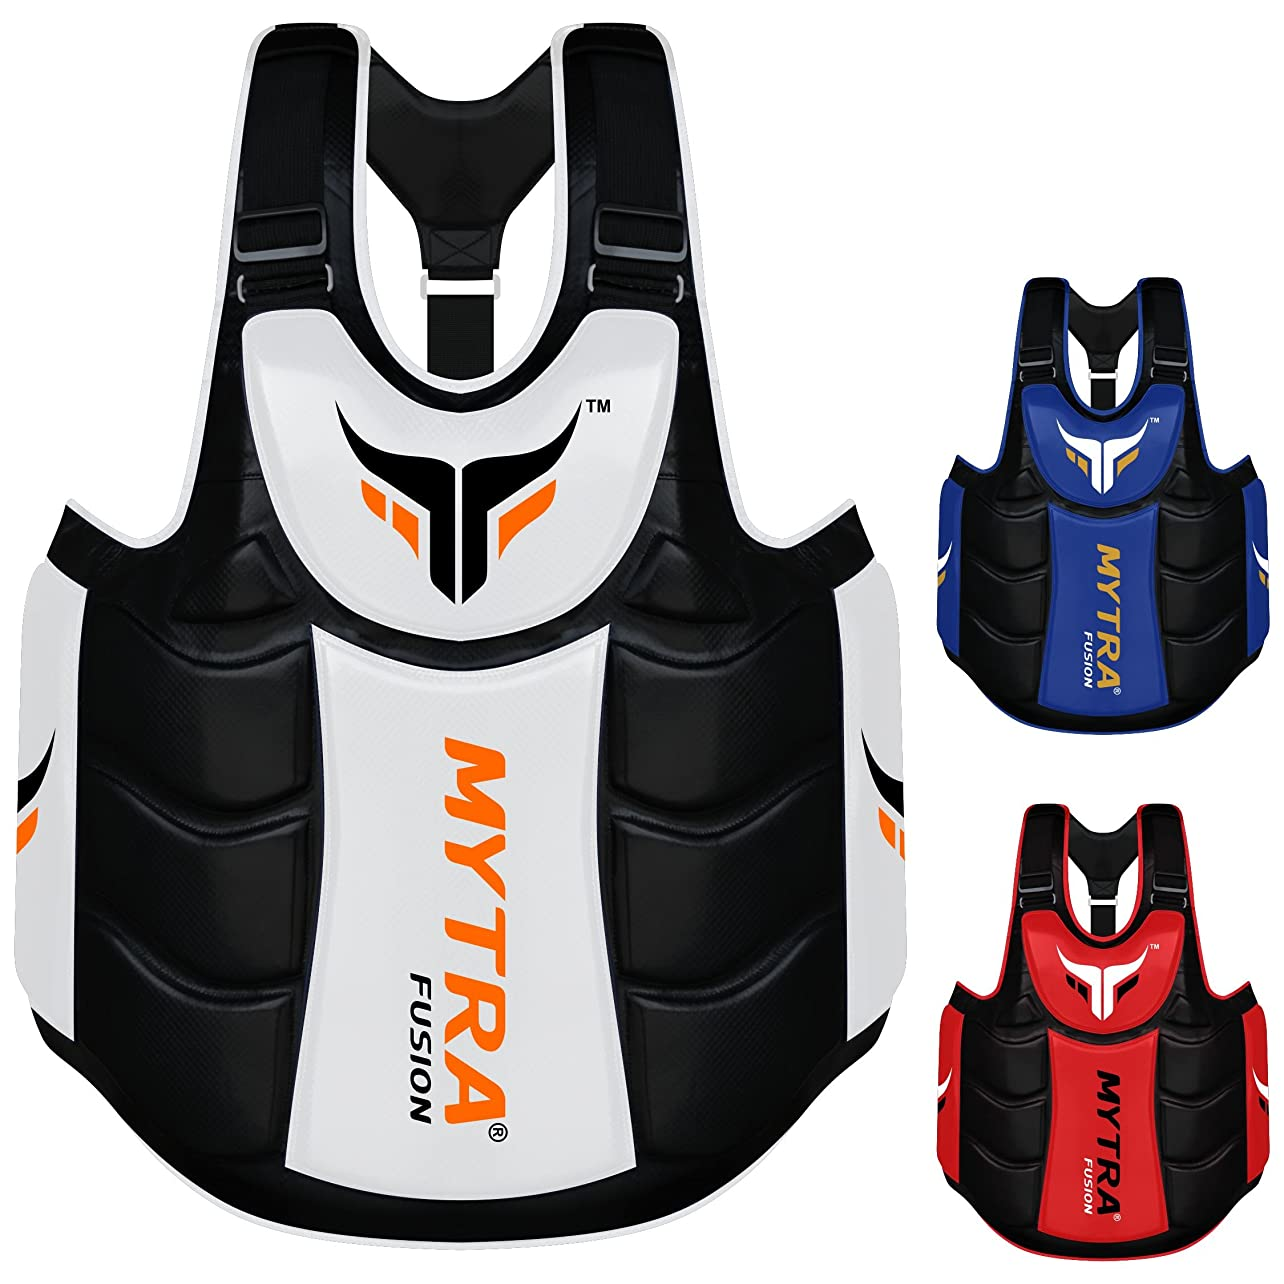 Mytra Fusion Chest & Belly Protector Body Shield Body Armor Body Pad Body Protector Chest Ribs Belly Protector Boxing MMA Muay Thai Fitness Gym Workout llqehomqgds46